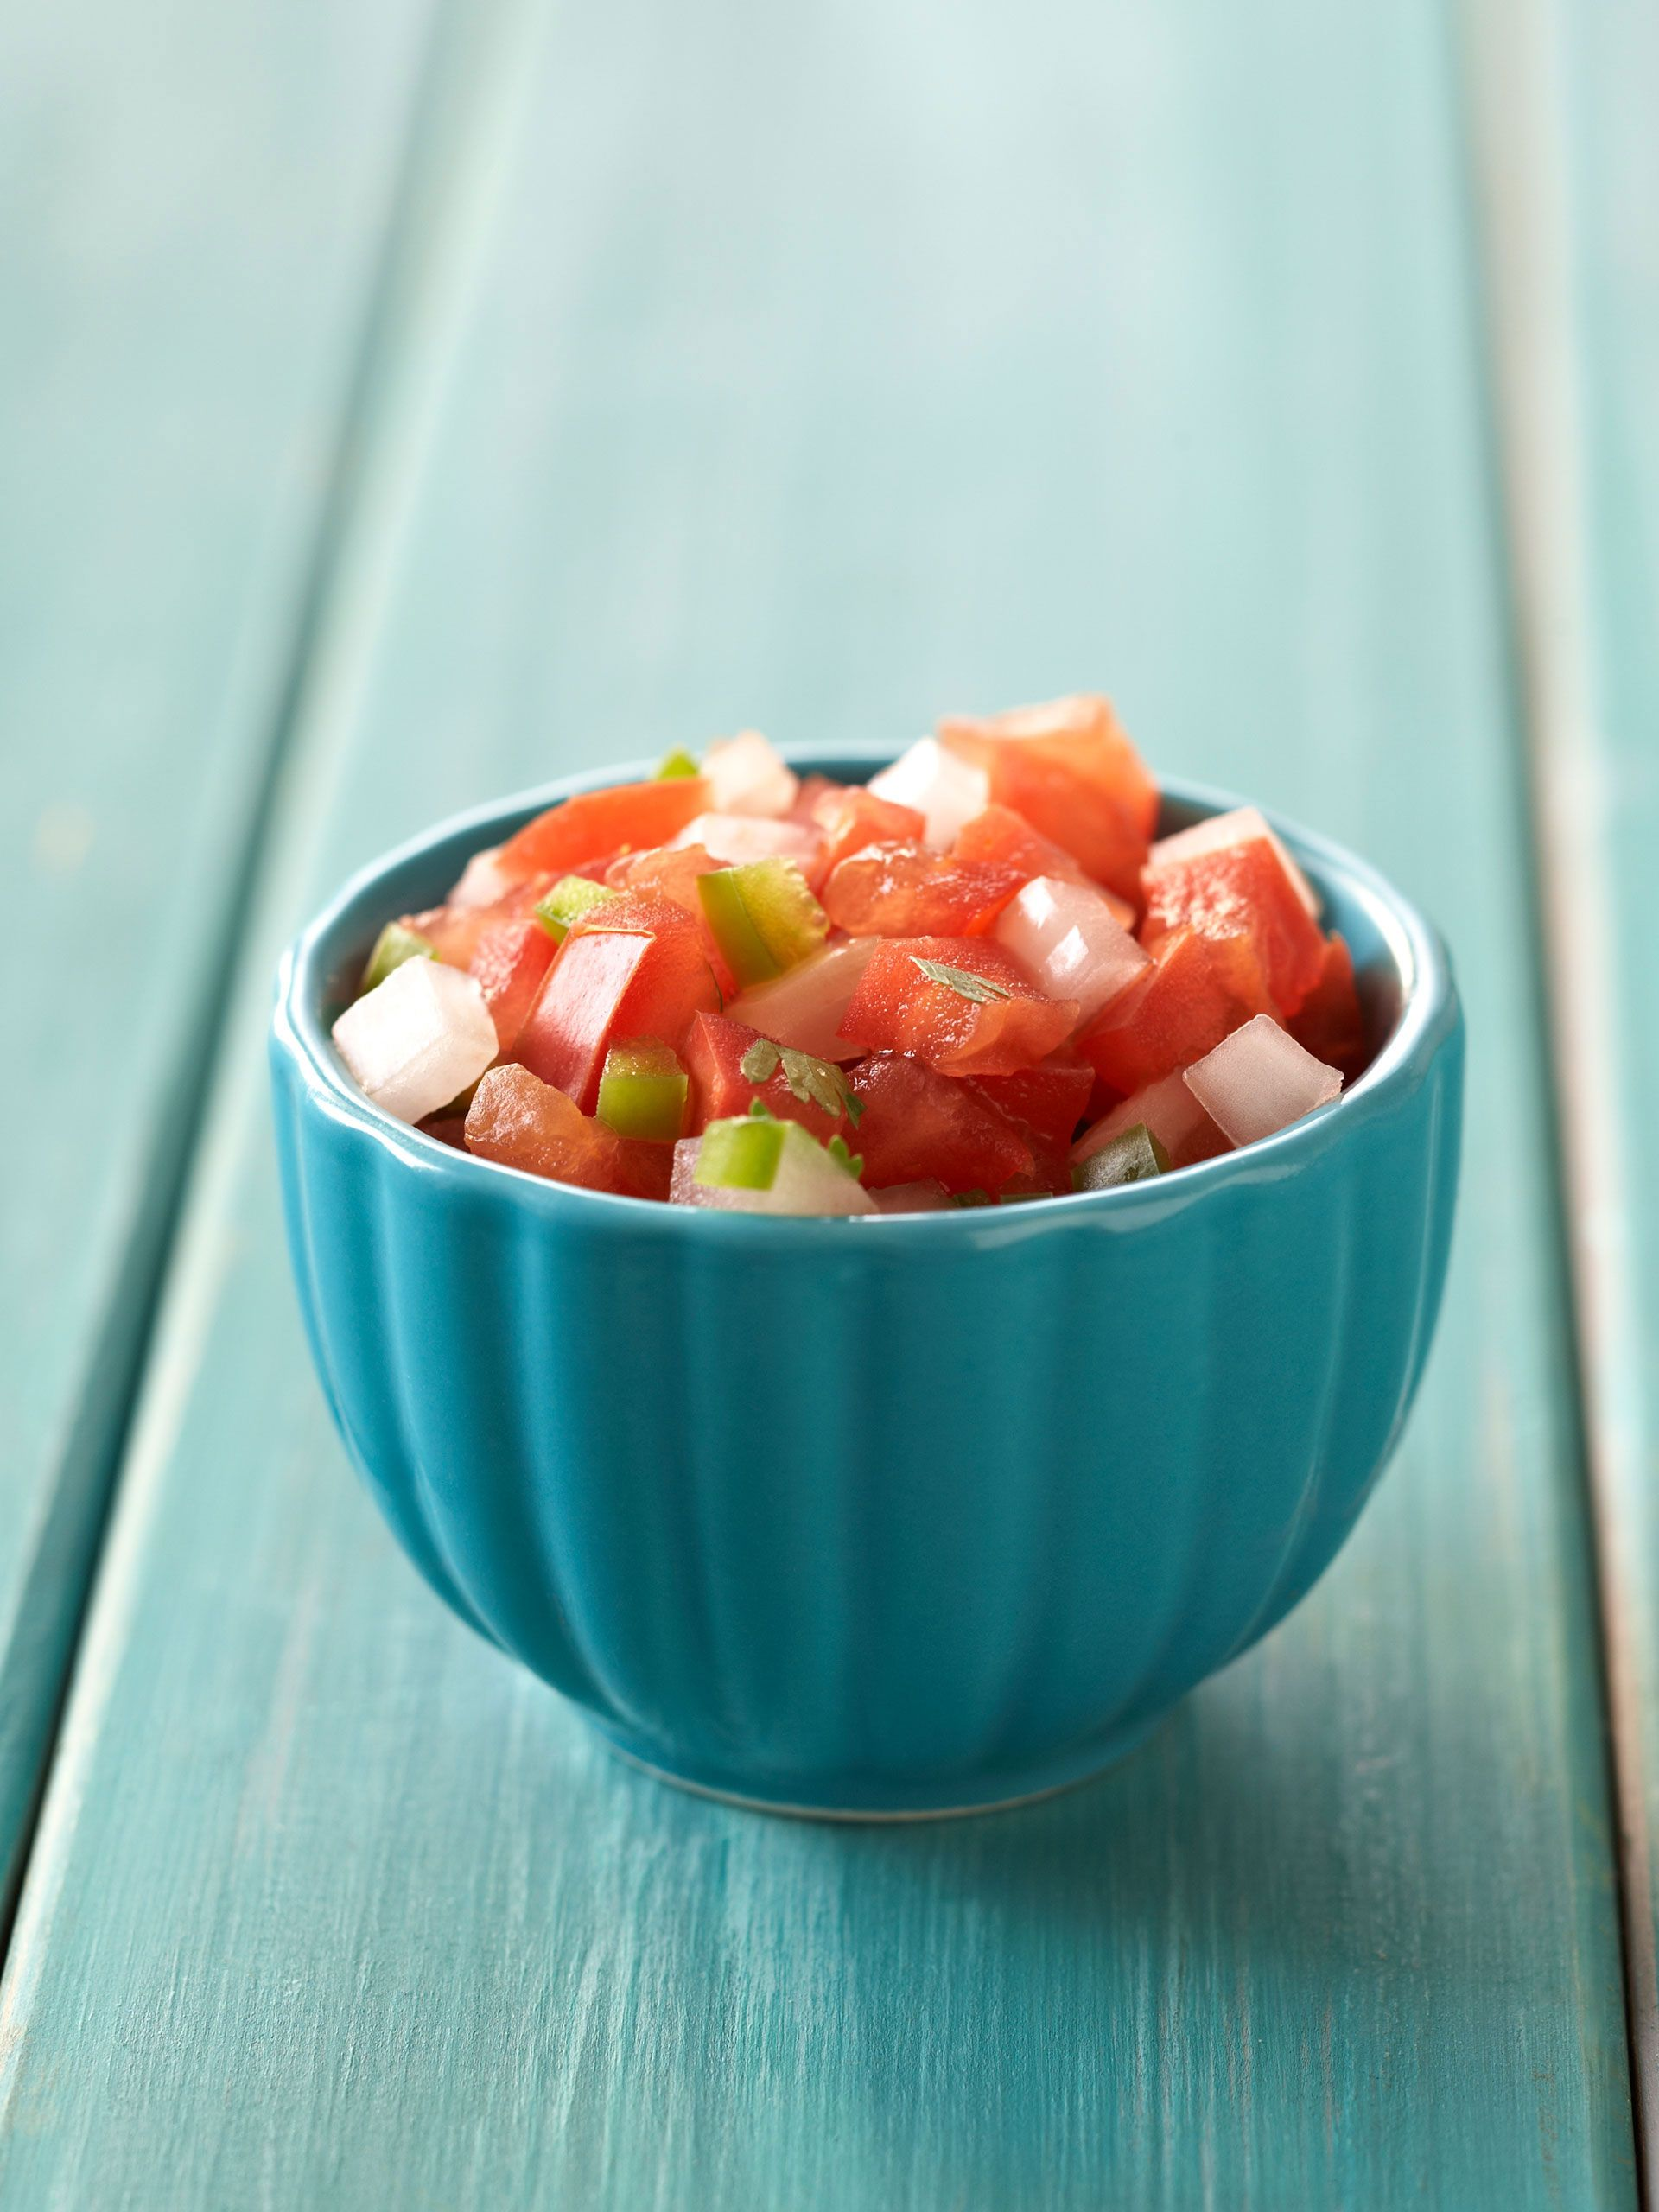 10 Fat-Burning Foods - Foods That Speed Up Metabolism